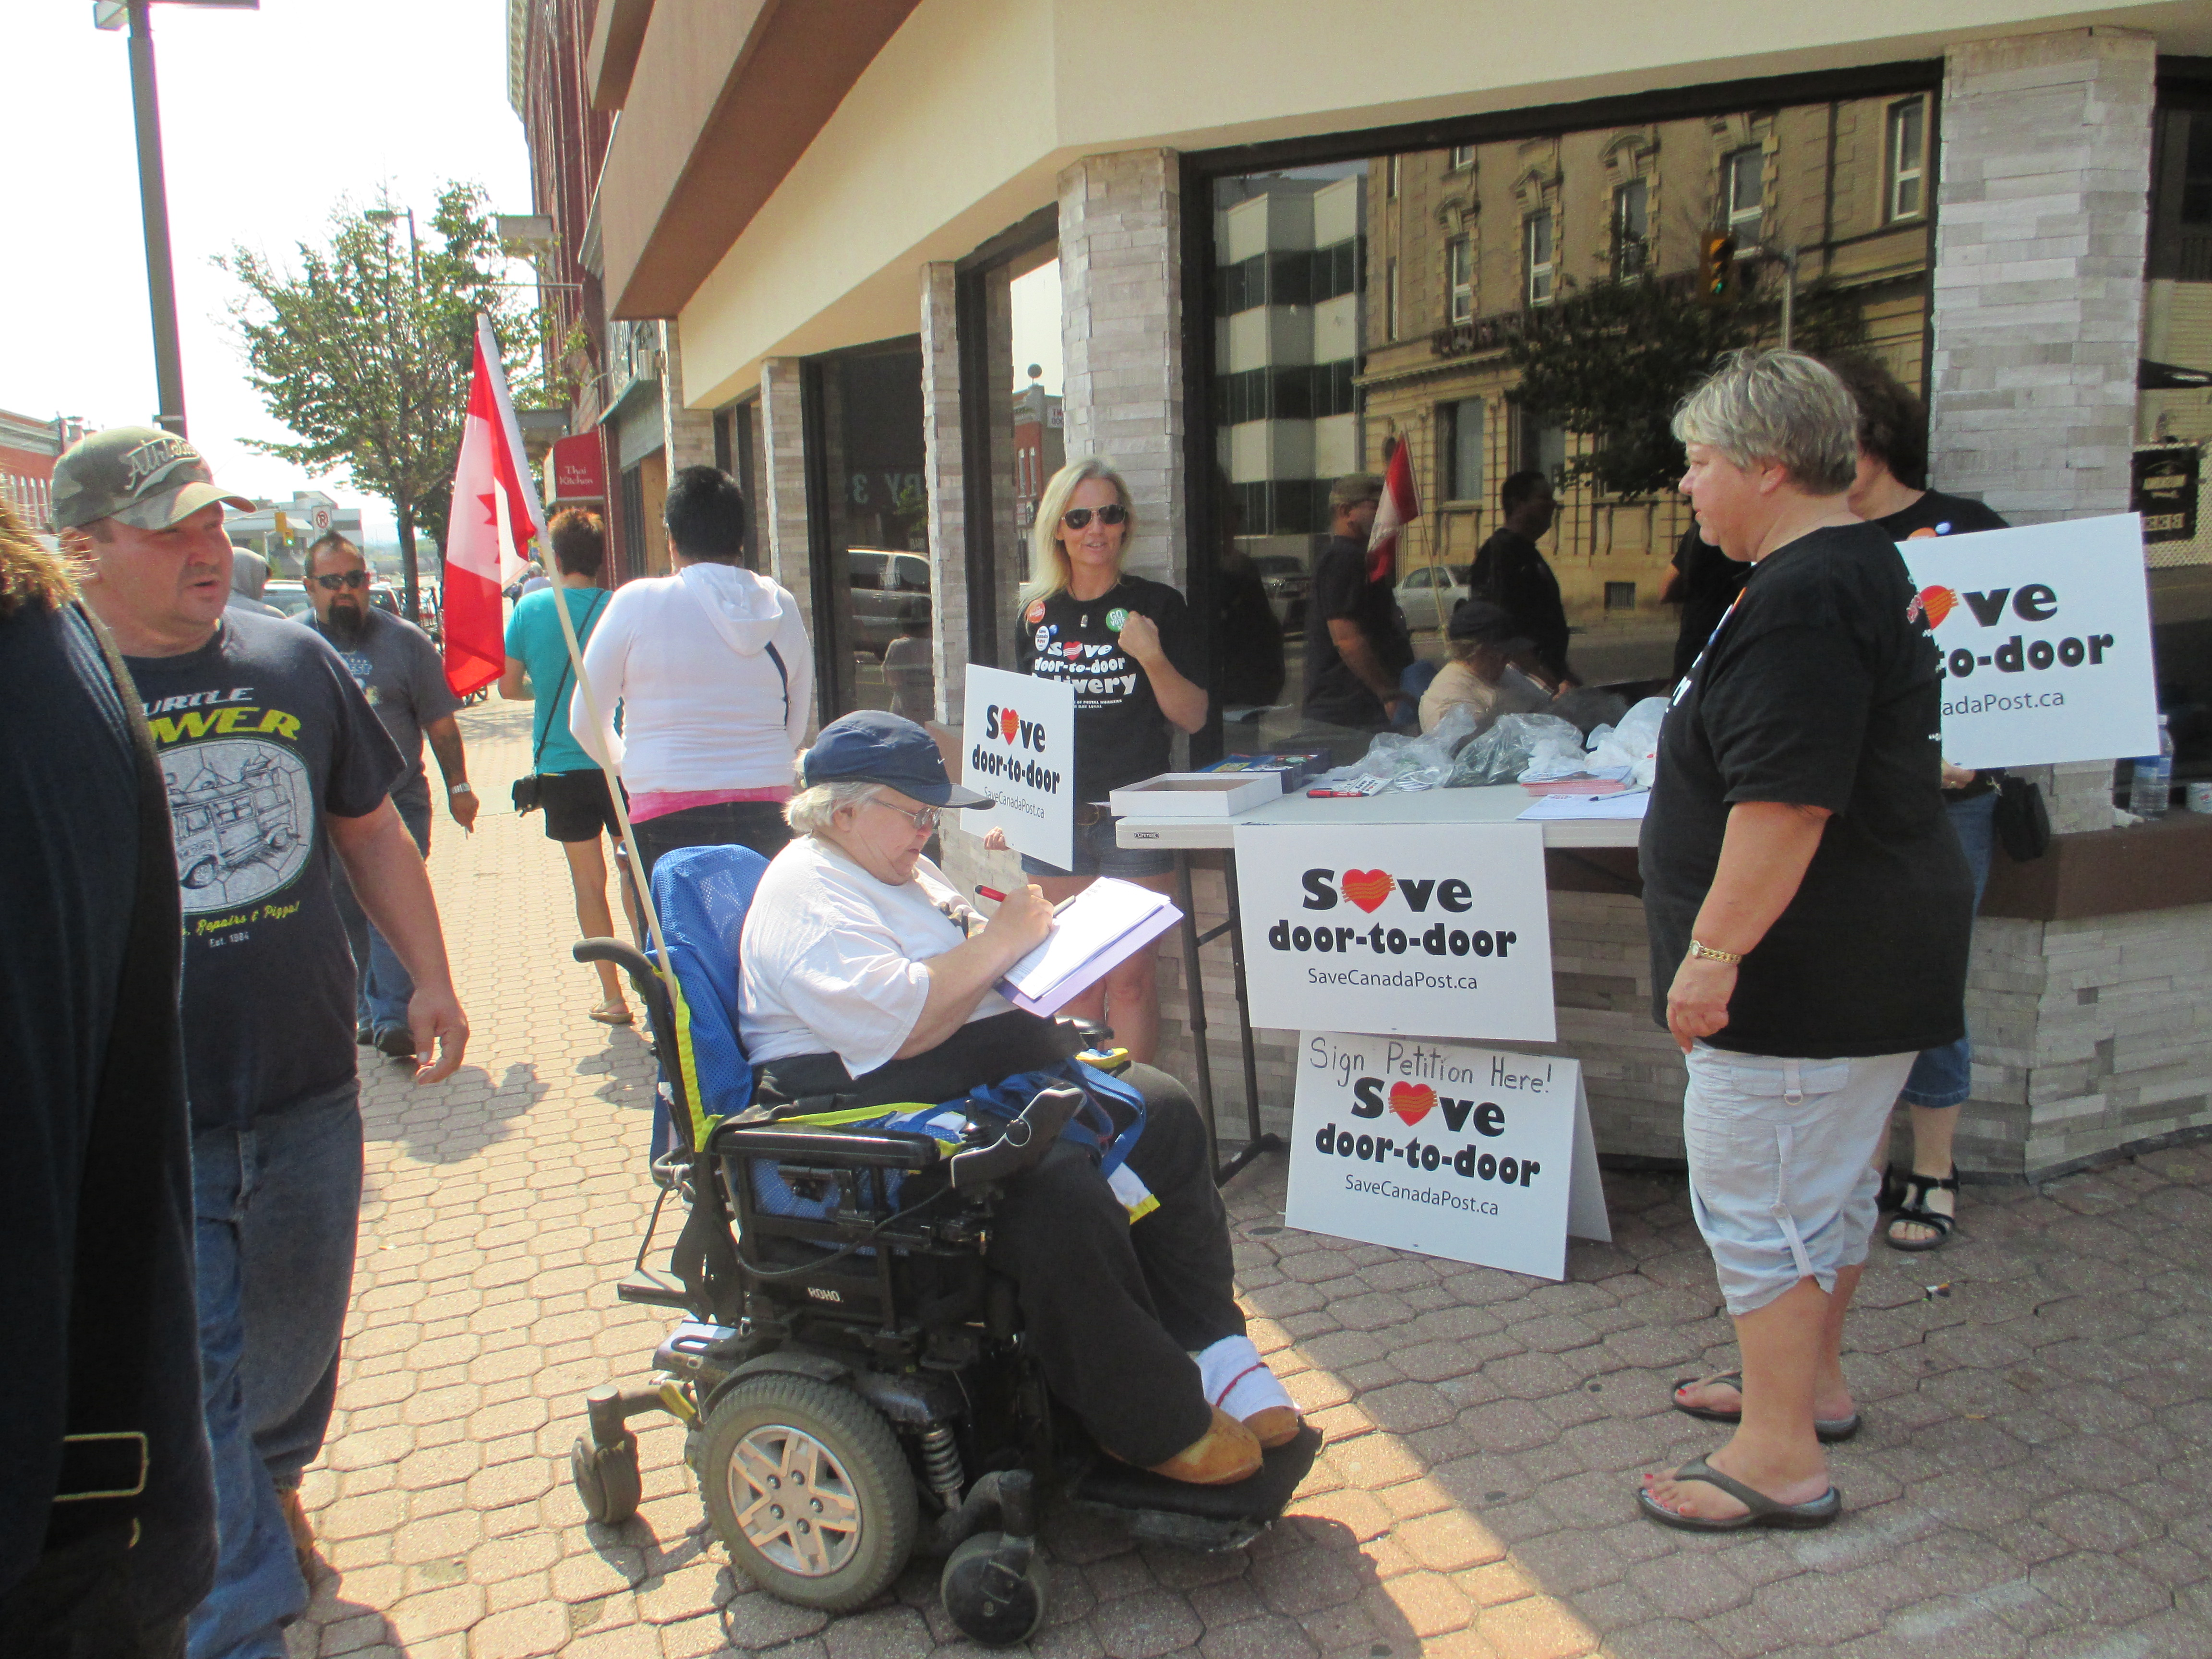 Public support in Thunder Bay